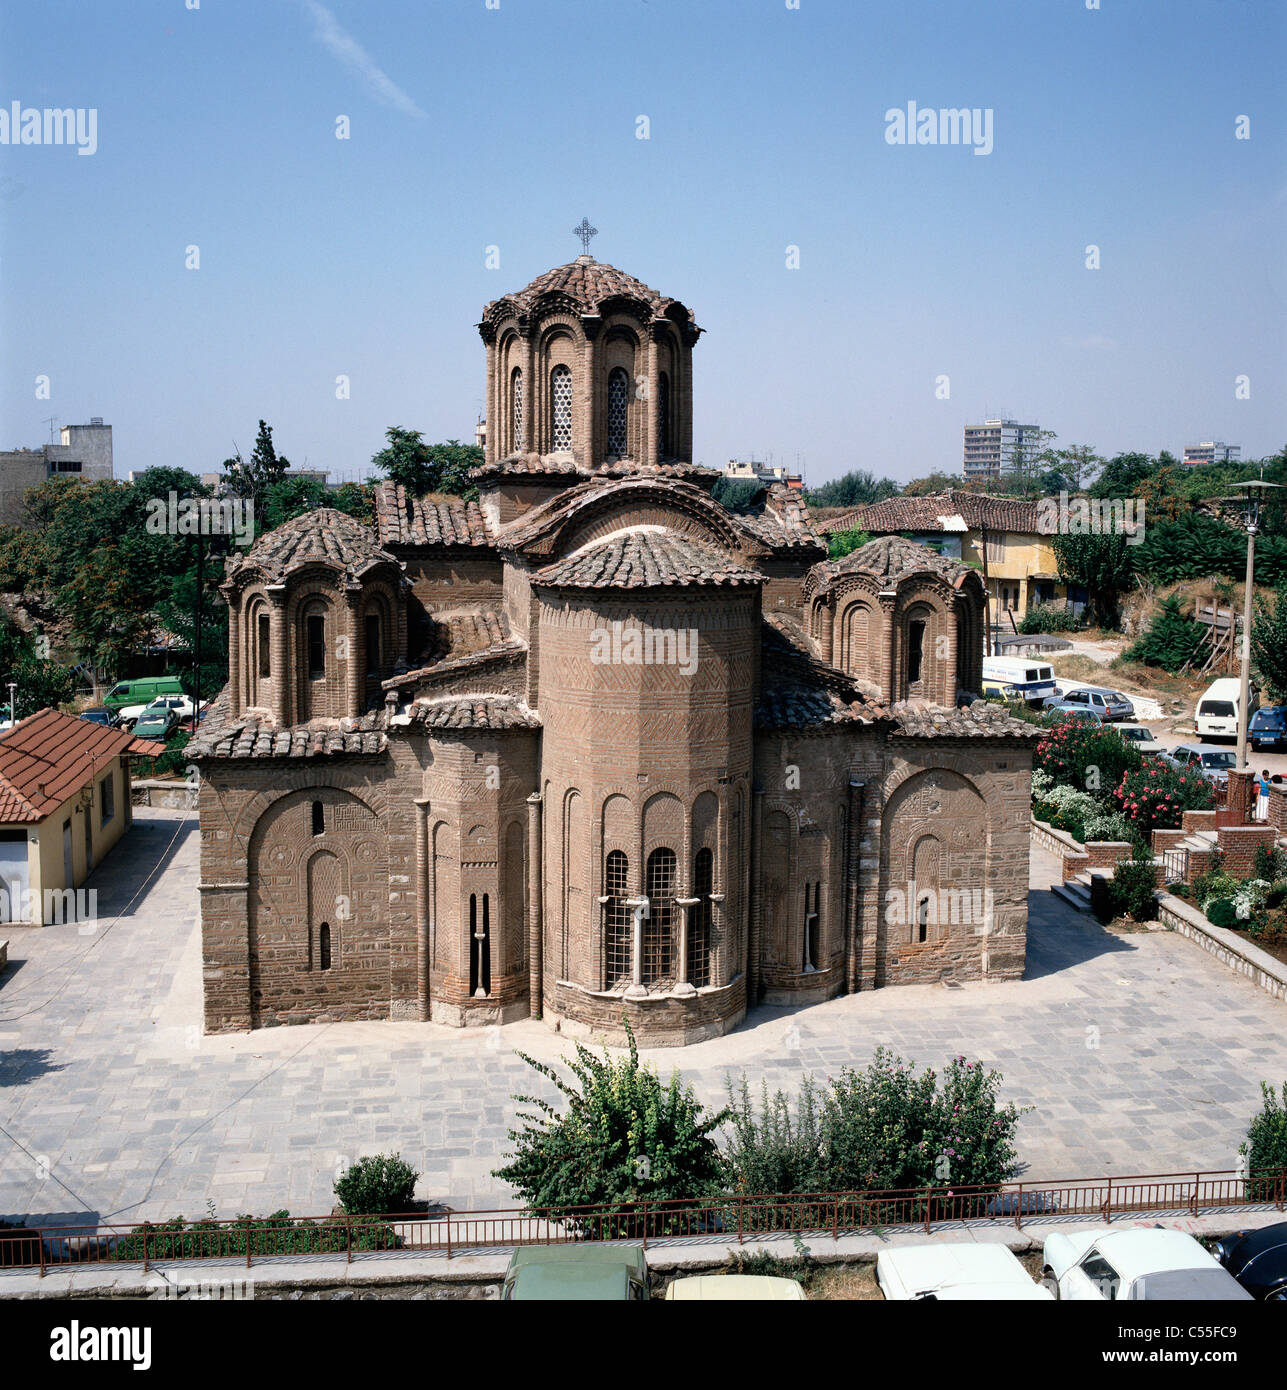 Holy Apostles Stockfotos & Holy Apostles Bilder - Alamy